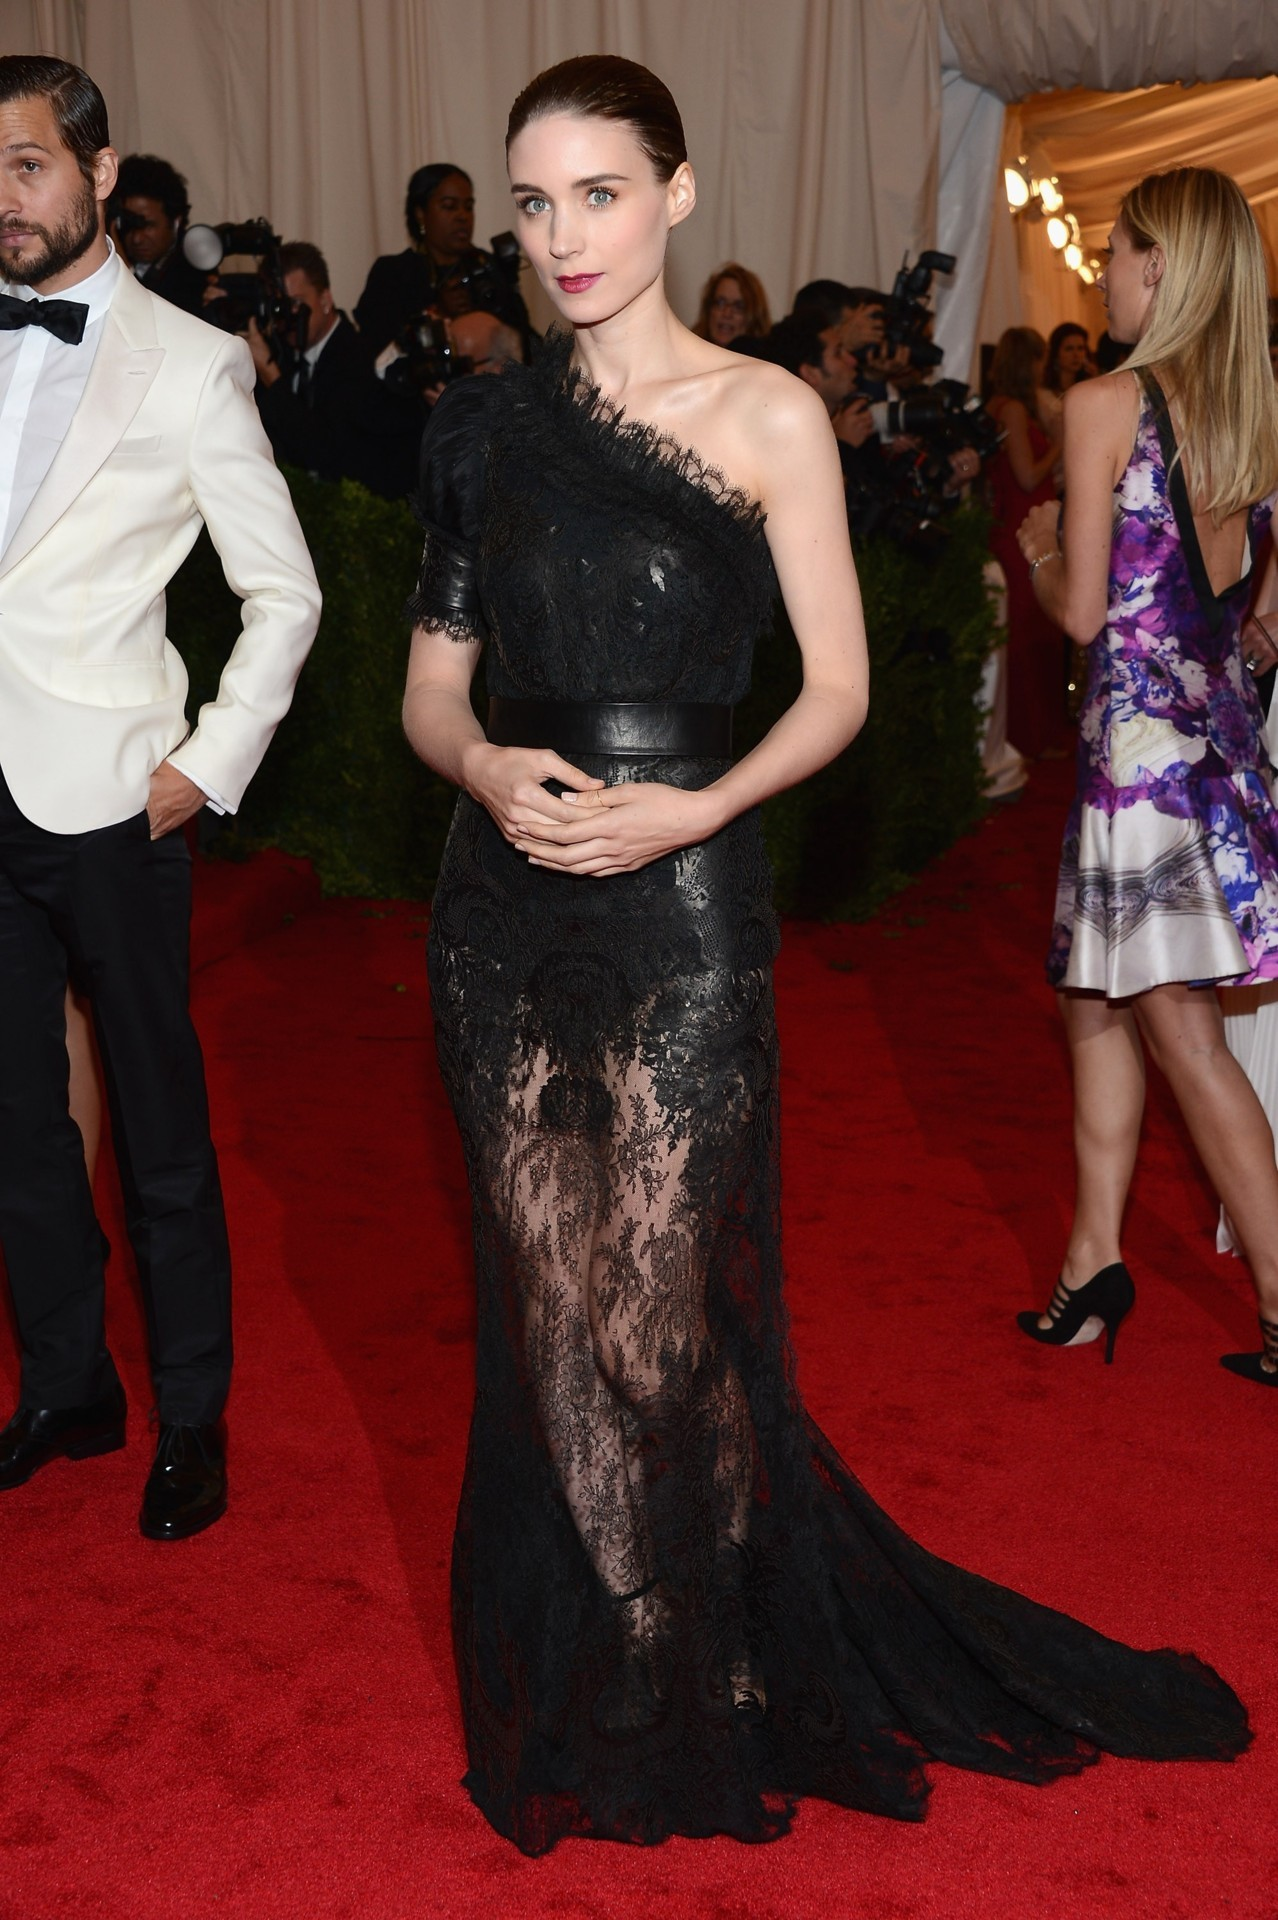 suicideblonde:  Rooney Mara in Givenchy at the 2012 Met Costume Gala, May 7th You can always trust Rooney to make the daring choice and look fantastic while doing it.  And she was made to wear Givenchy.